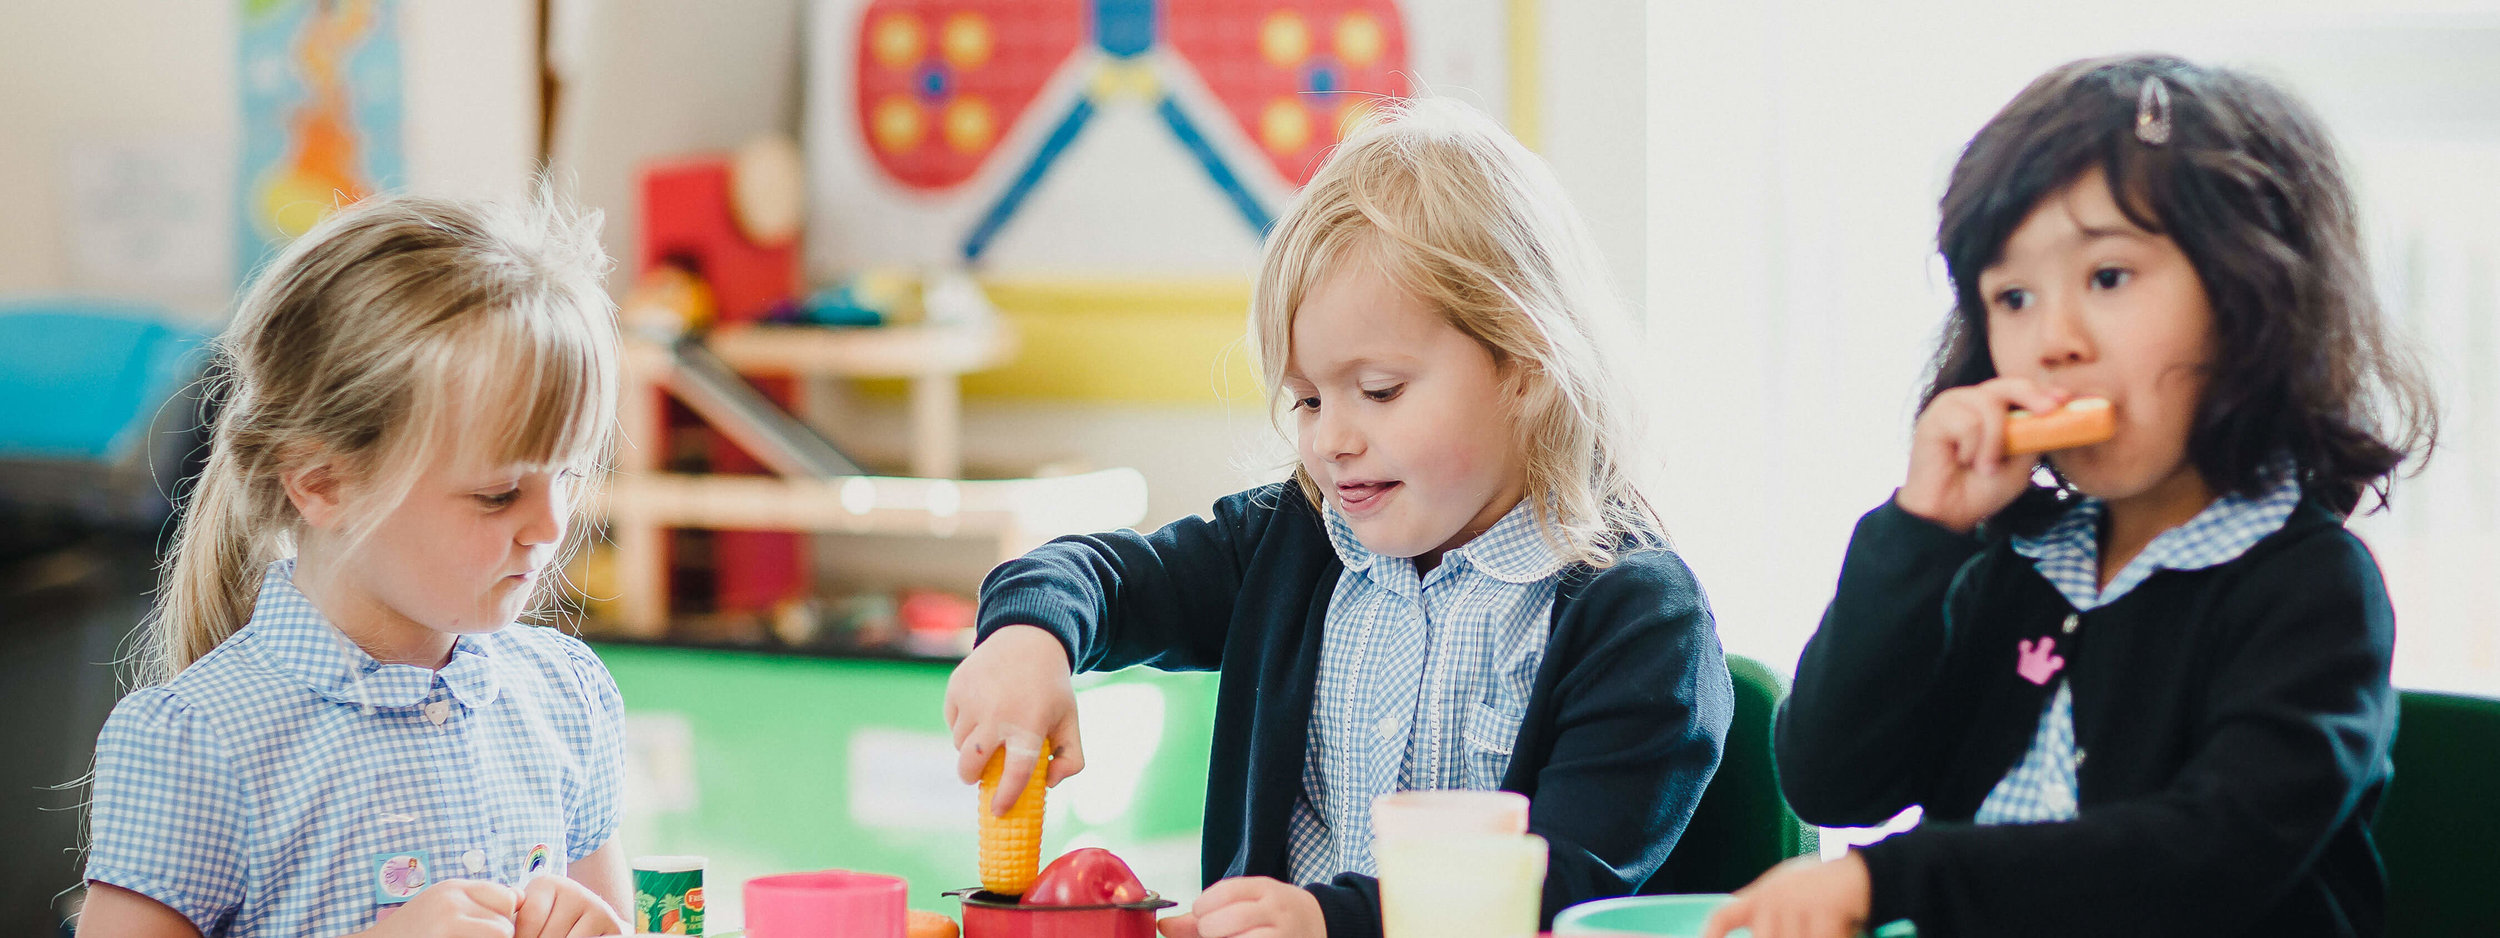 Hessle-Mount-Primary-pre-school--girls-playing.jpg